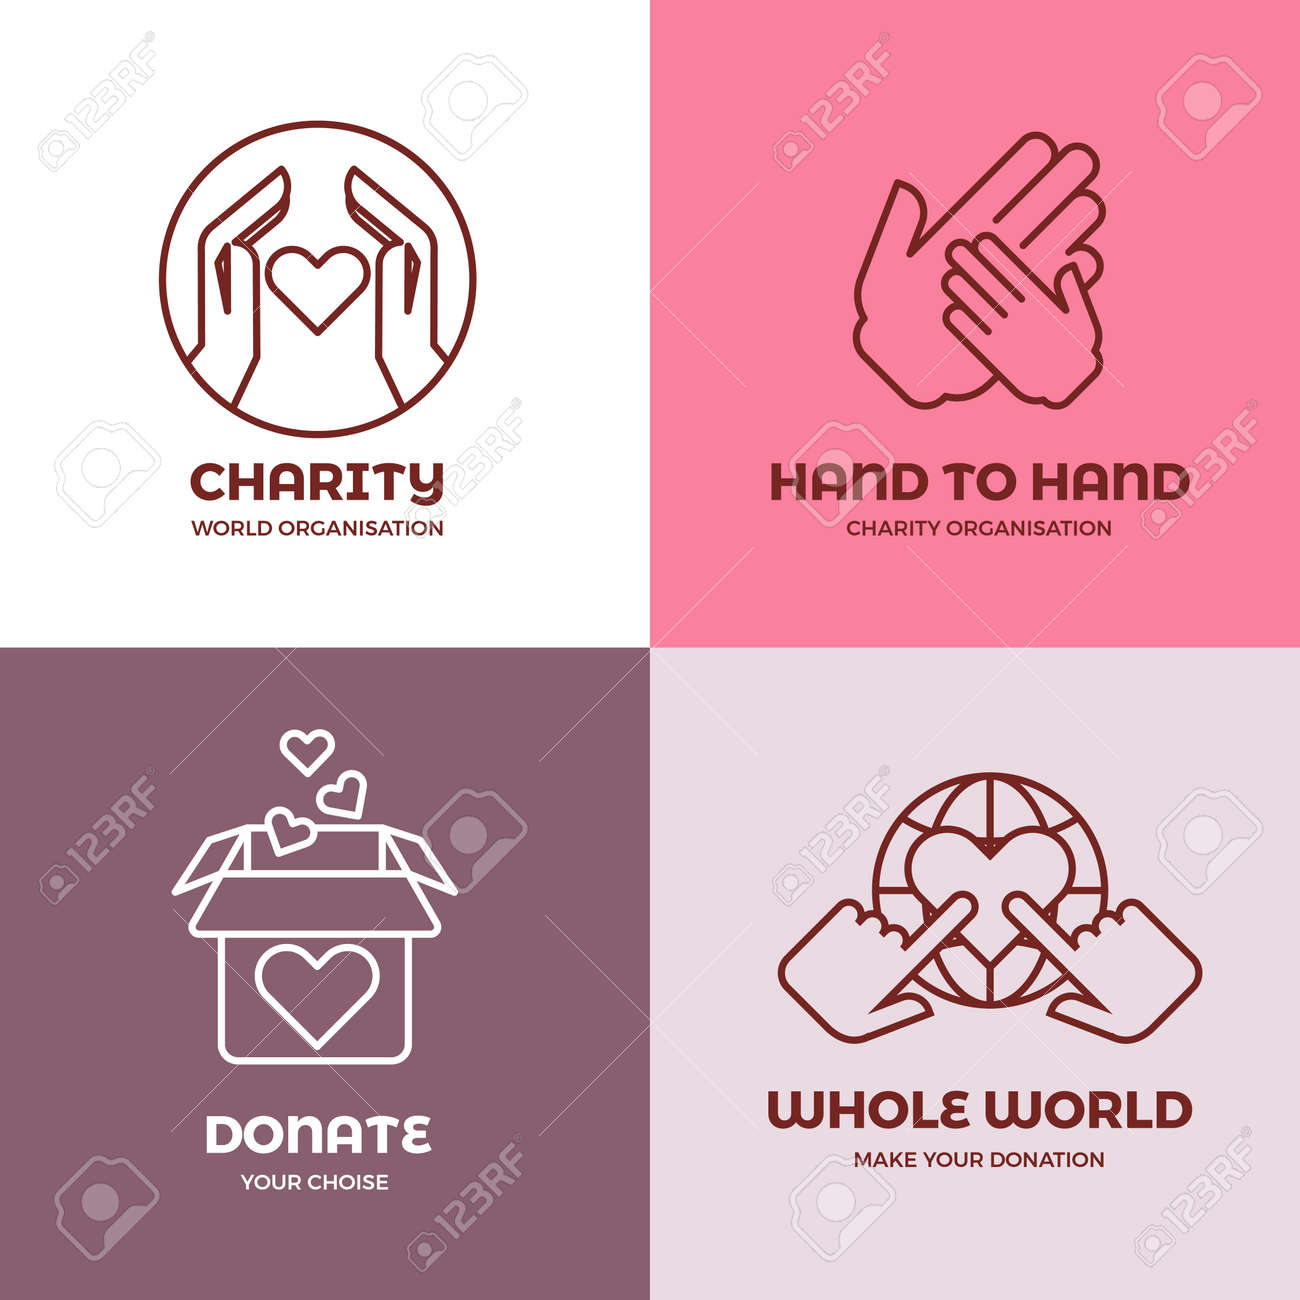 Nonprofit and volunteer organization, charity, philanthropy concept vector logo set. Concept of charity, illustration of emblems charity world organization - 165951707